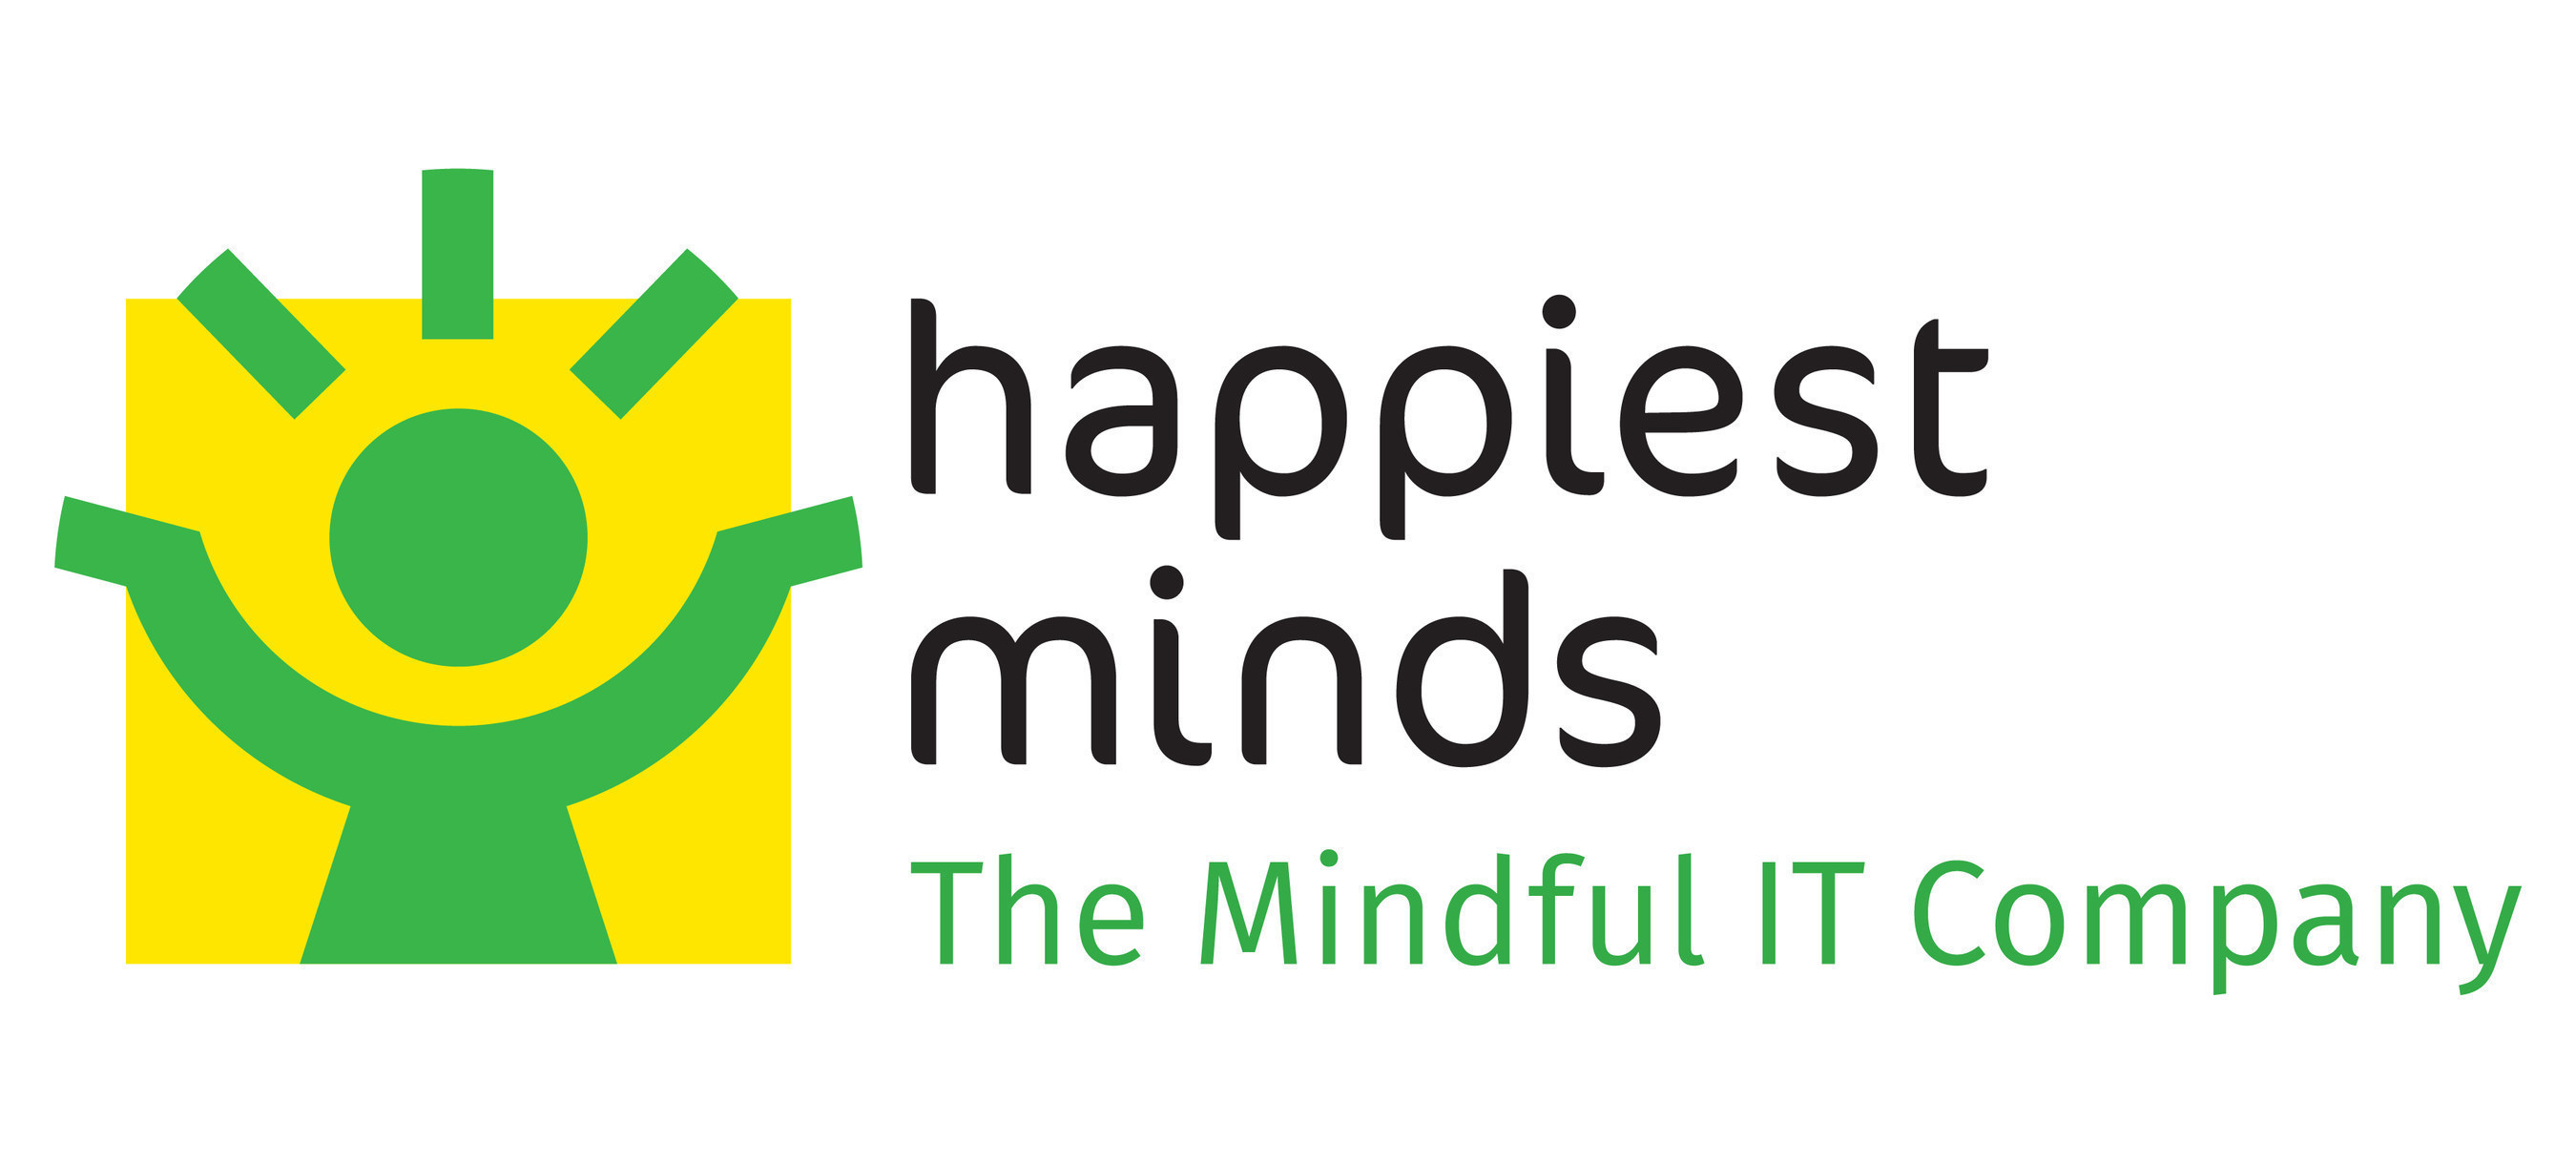 Happiest Minds Strengthens its Leadership Position in IoT With Acquisition of Cupola Technology